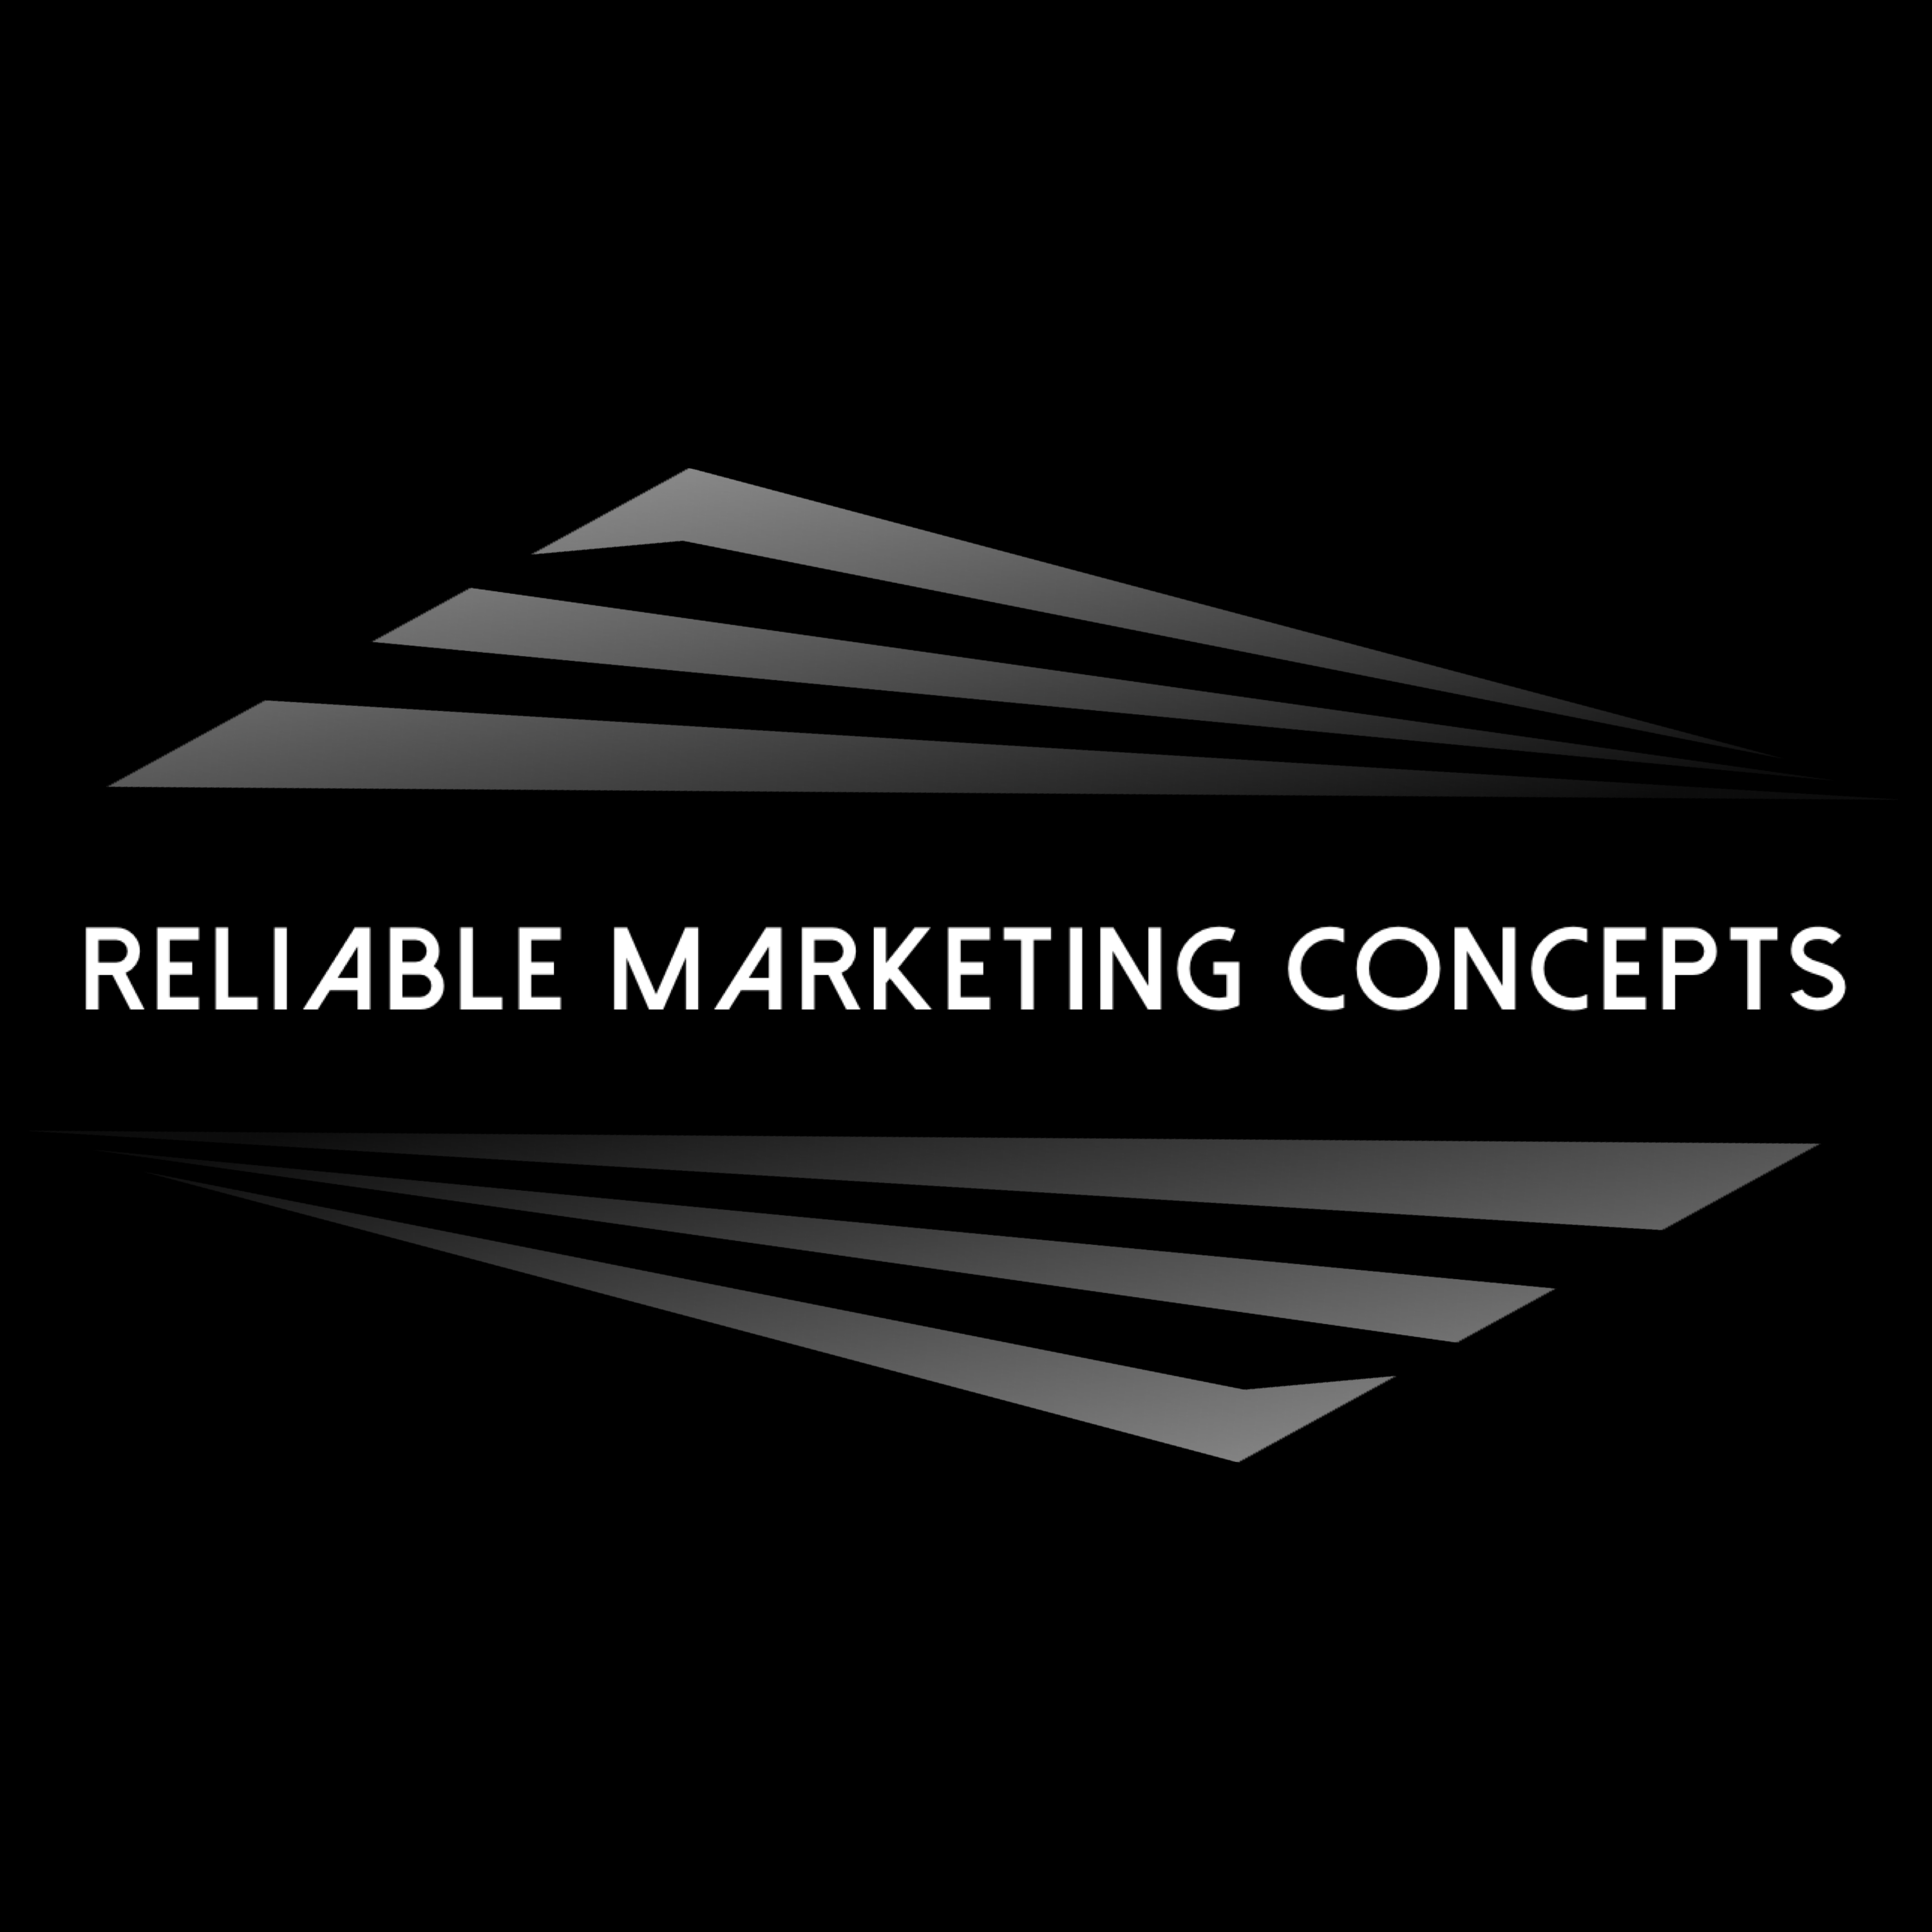 Reliable Marketing Concepts